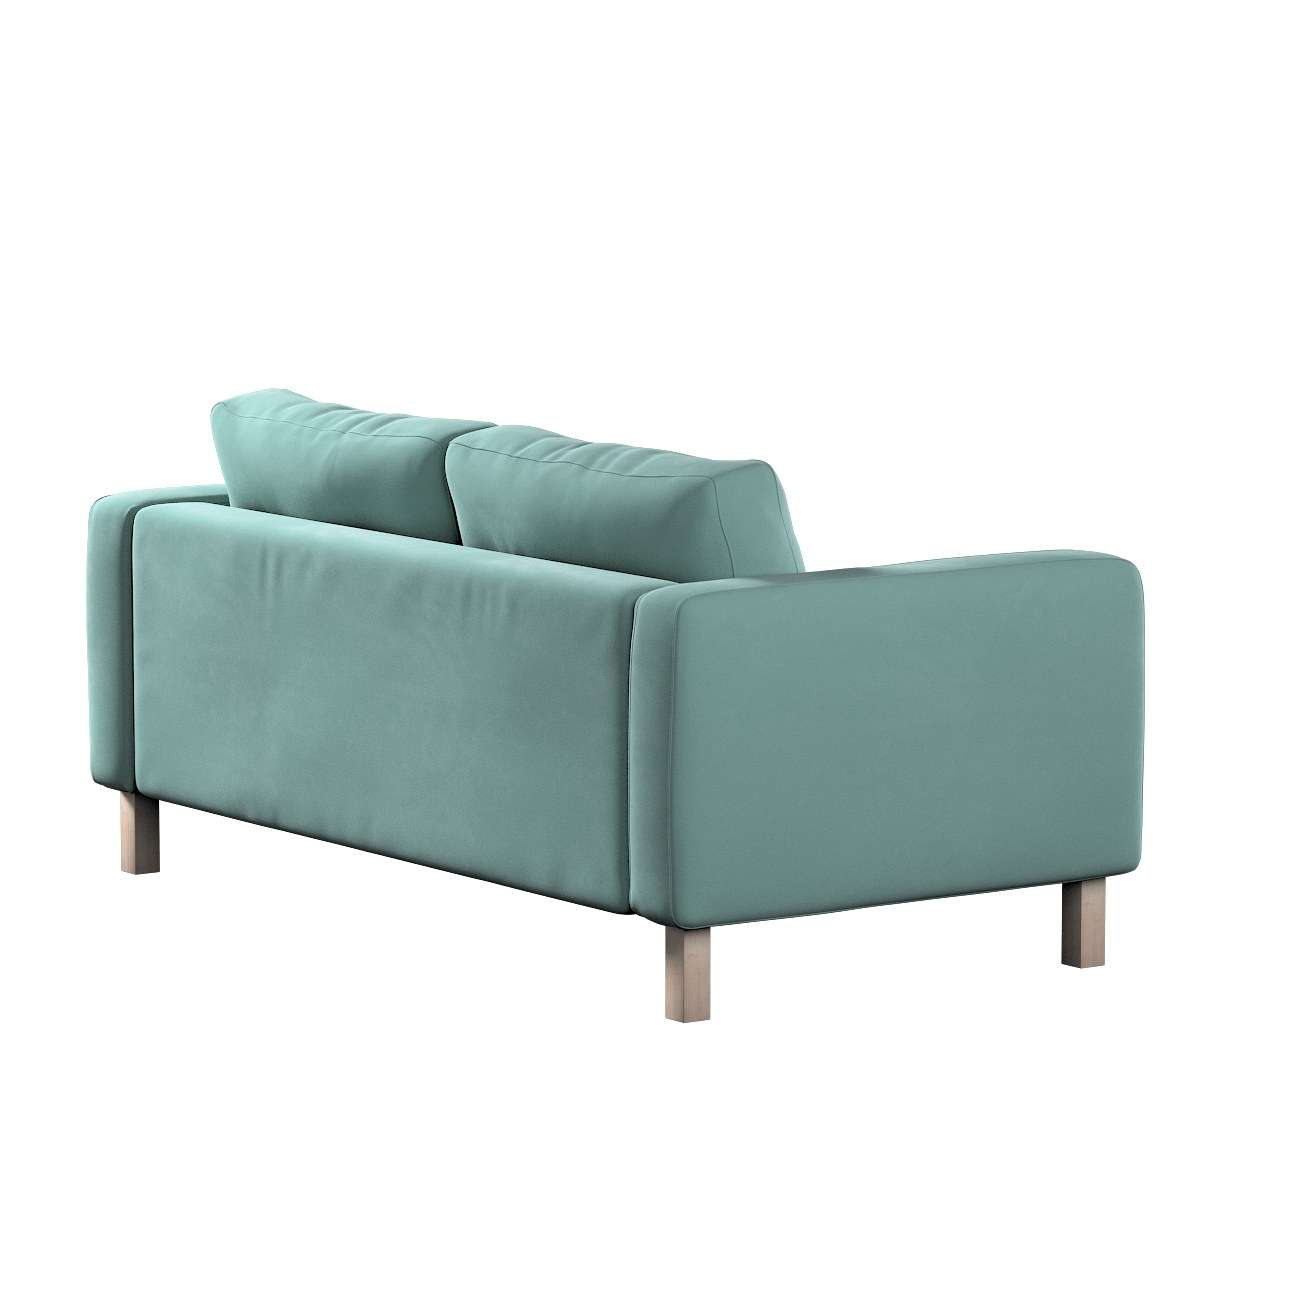 Karlstad 2-seater sofa cover in collection Velvet, fabric: 704-18